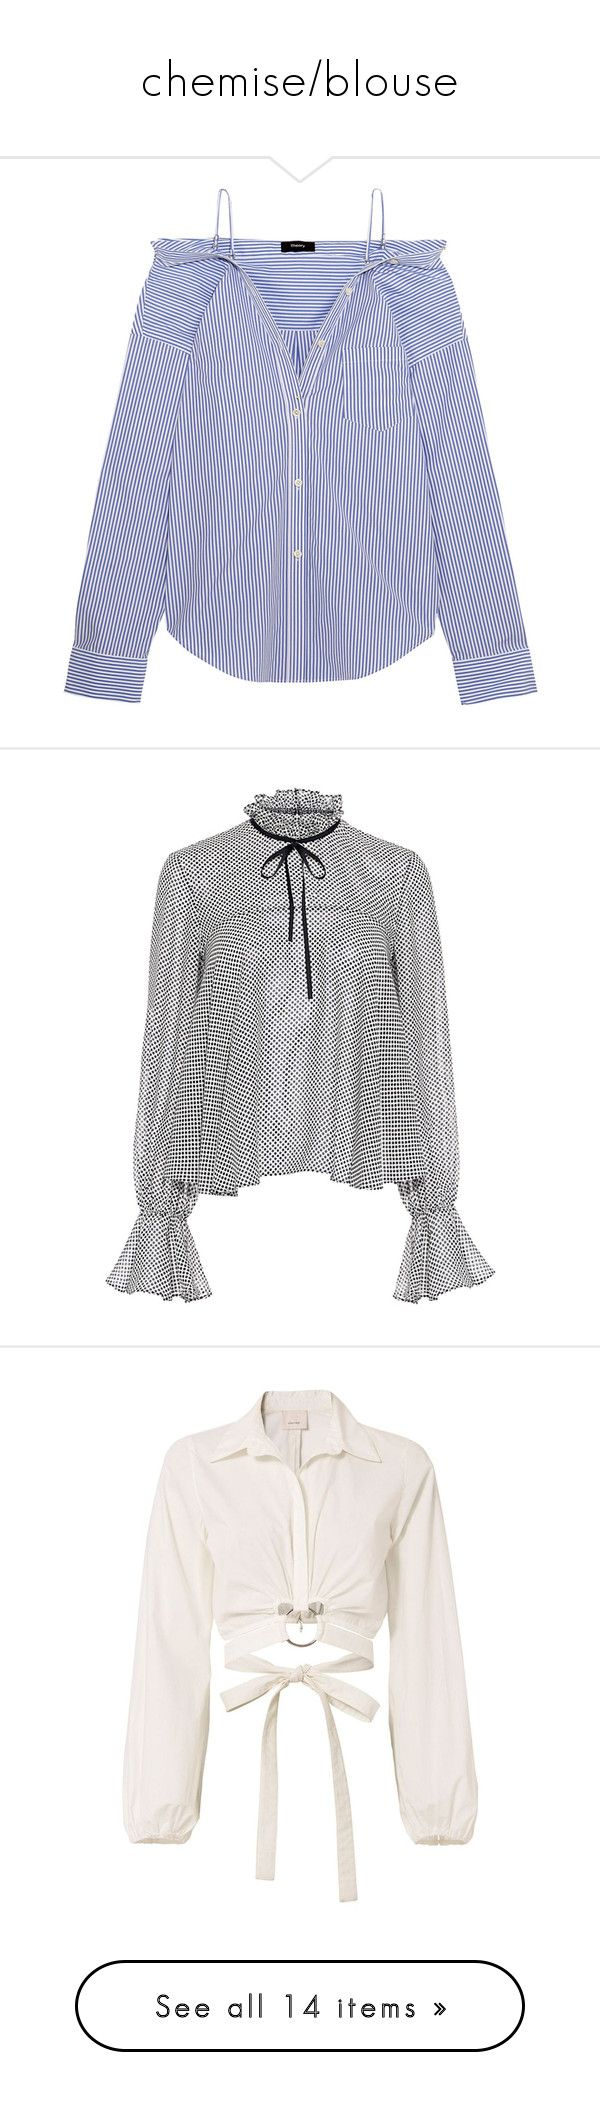 """""""chemise/blouse"""" by hautediorhoe ❤ liked on Polyvore featuring tops, blouses, shirts, blusas, blue, button up shirts, blue blouse, blue shirt, off shoulder blouse and off the shoulder shirts"""